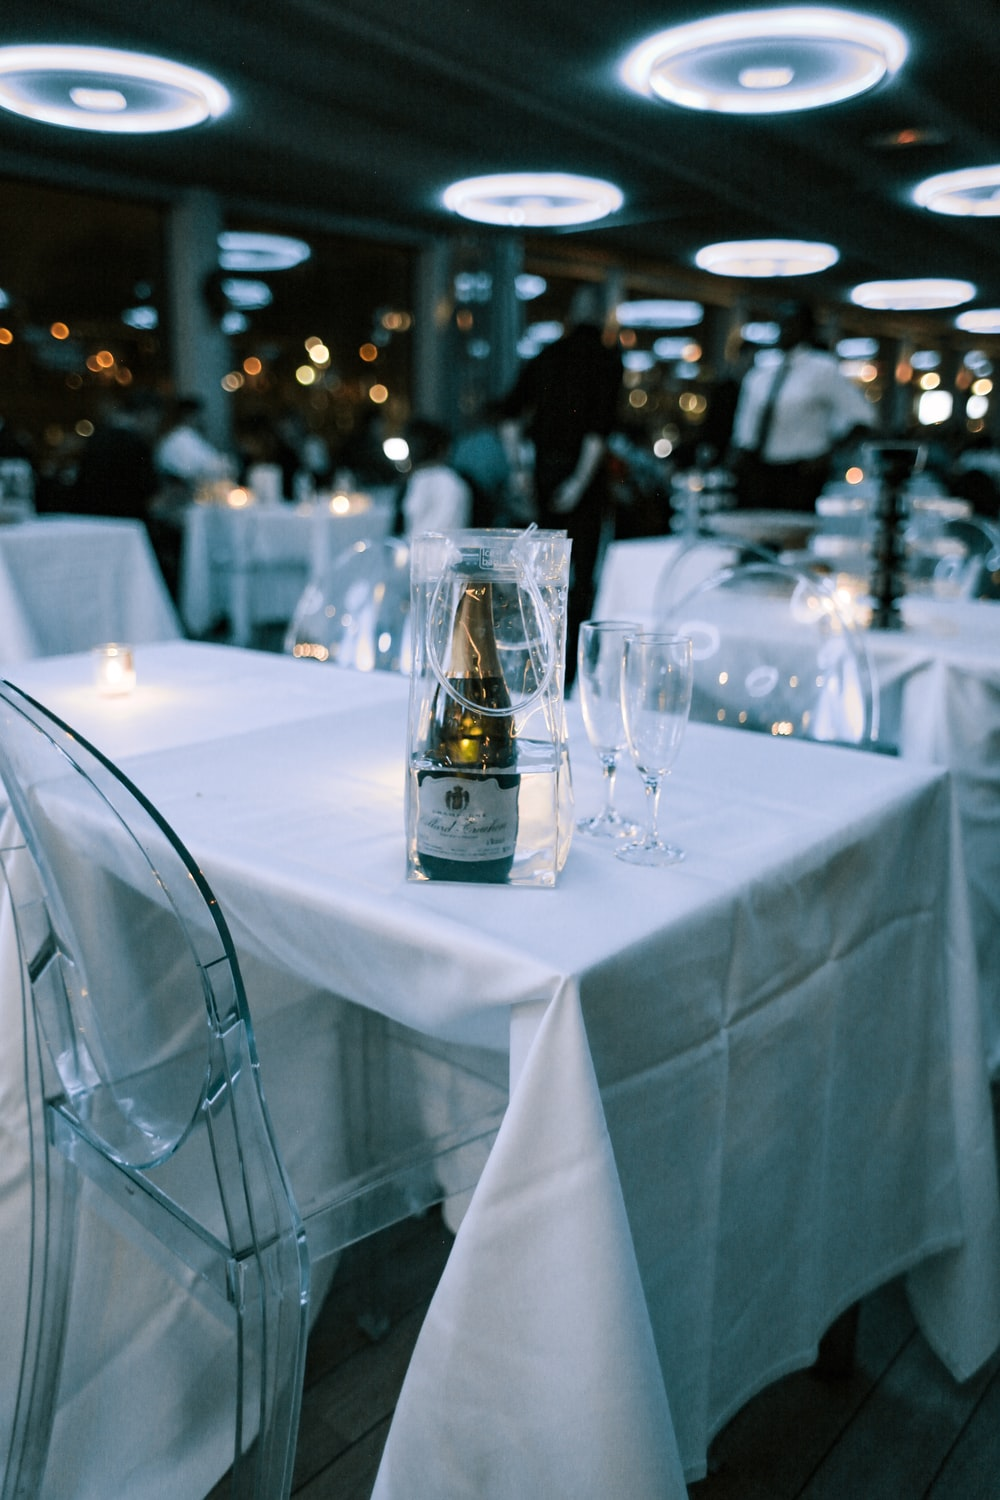 white labeled bottle on table